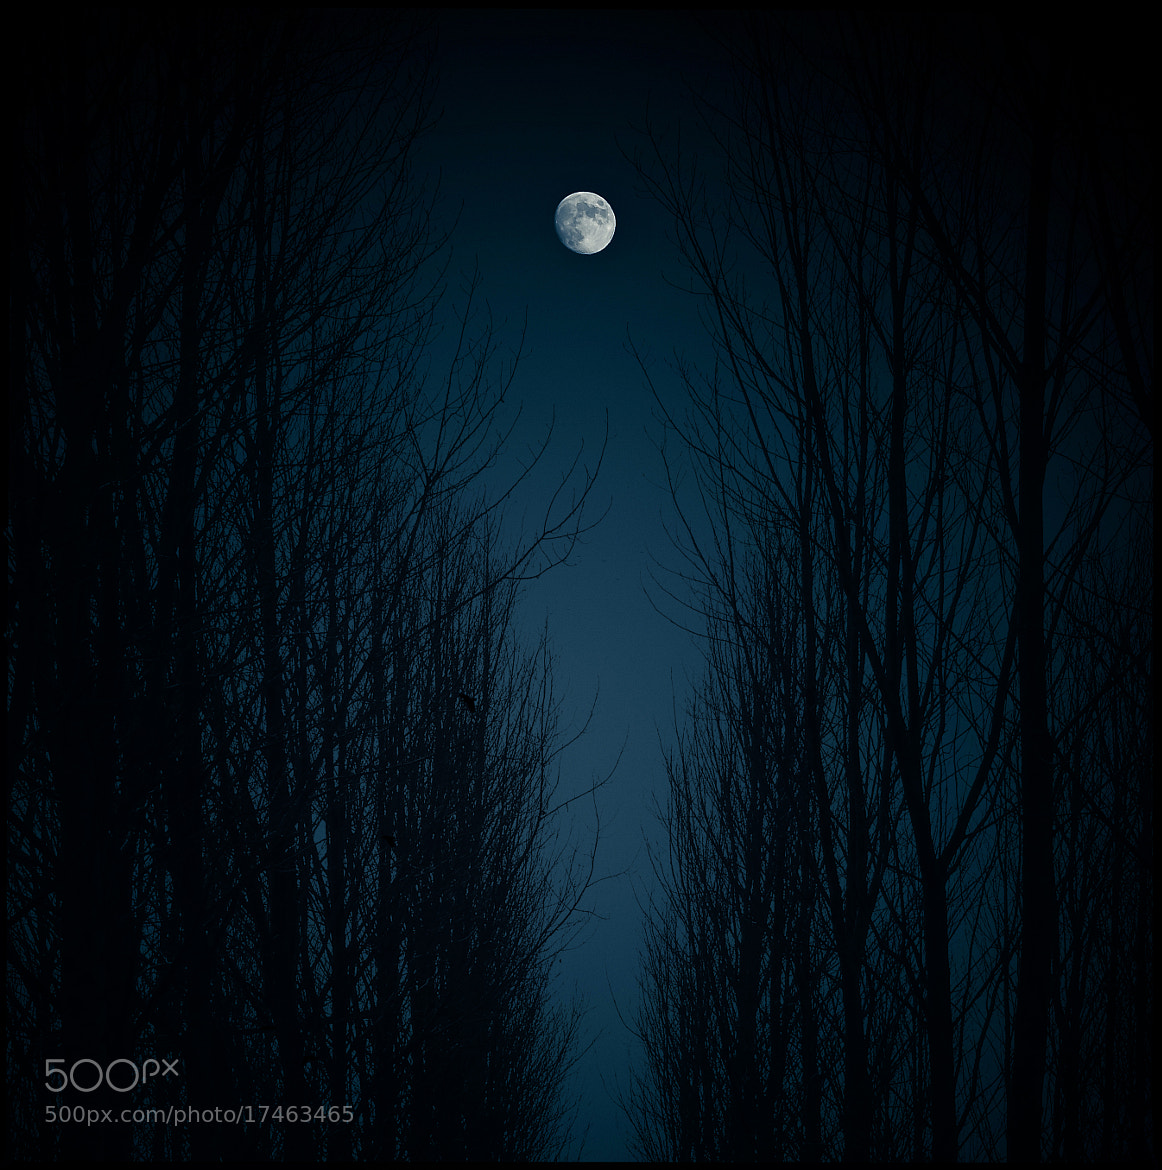 Photograph Moonlit Night by Luis Mariano González on 500px